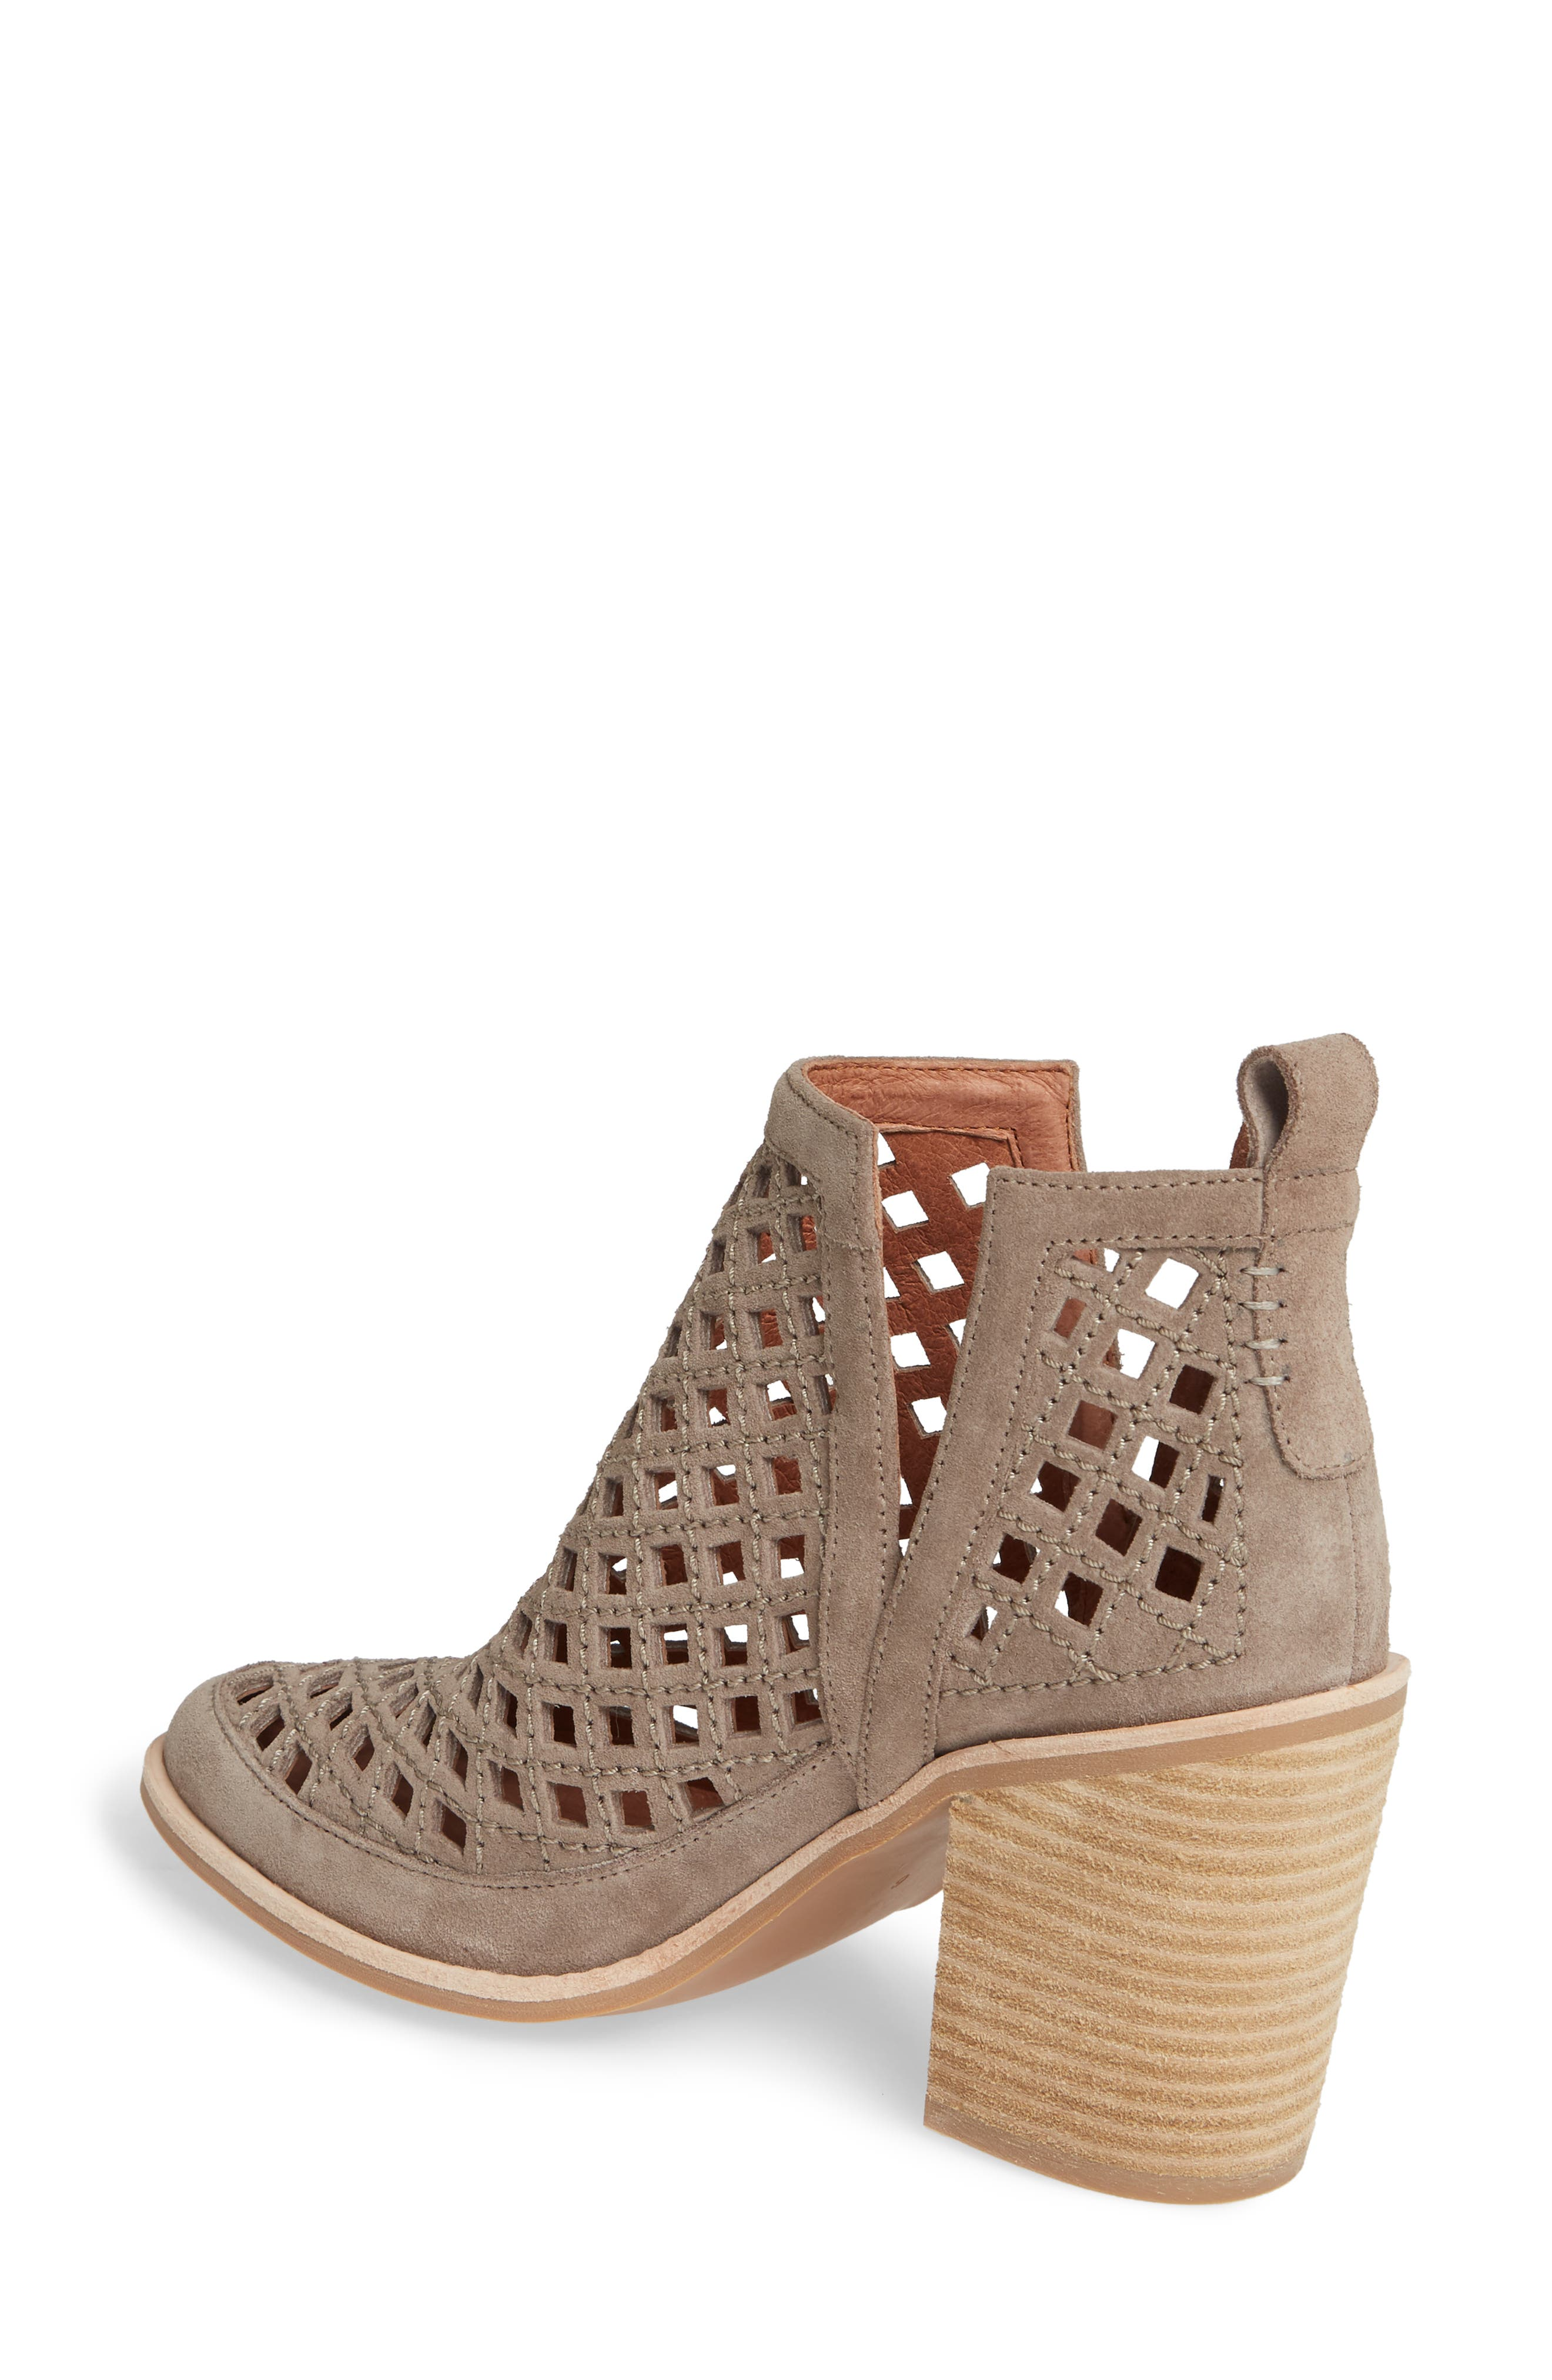 JEFFREY CAMPBELL, Kamet Bootie, Alternate thumbnail 2, color, TAUPE SUEDE